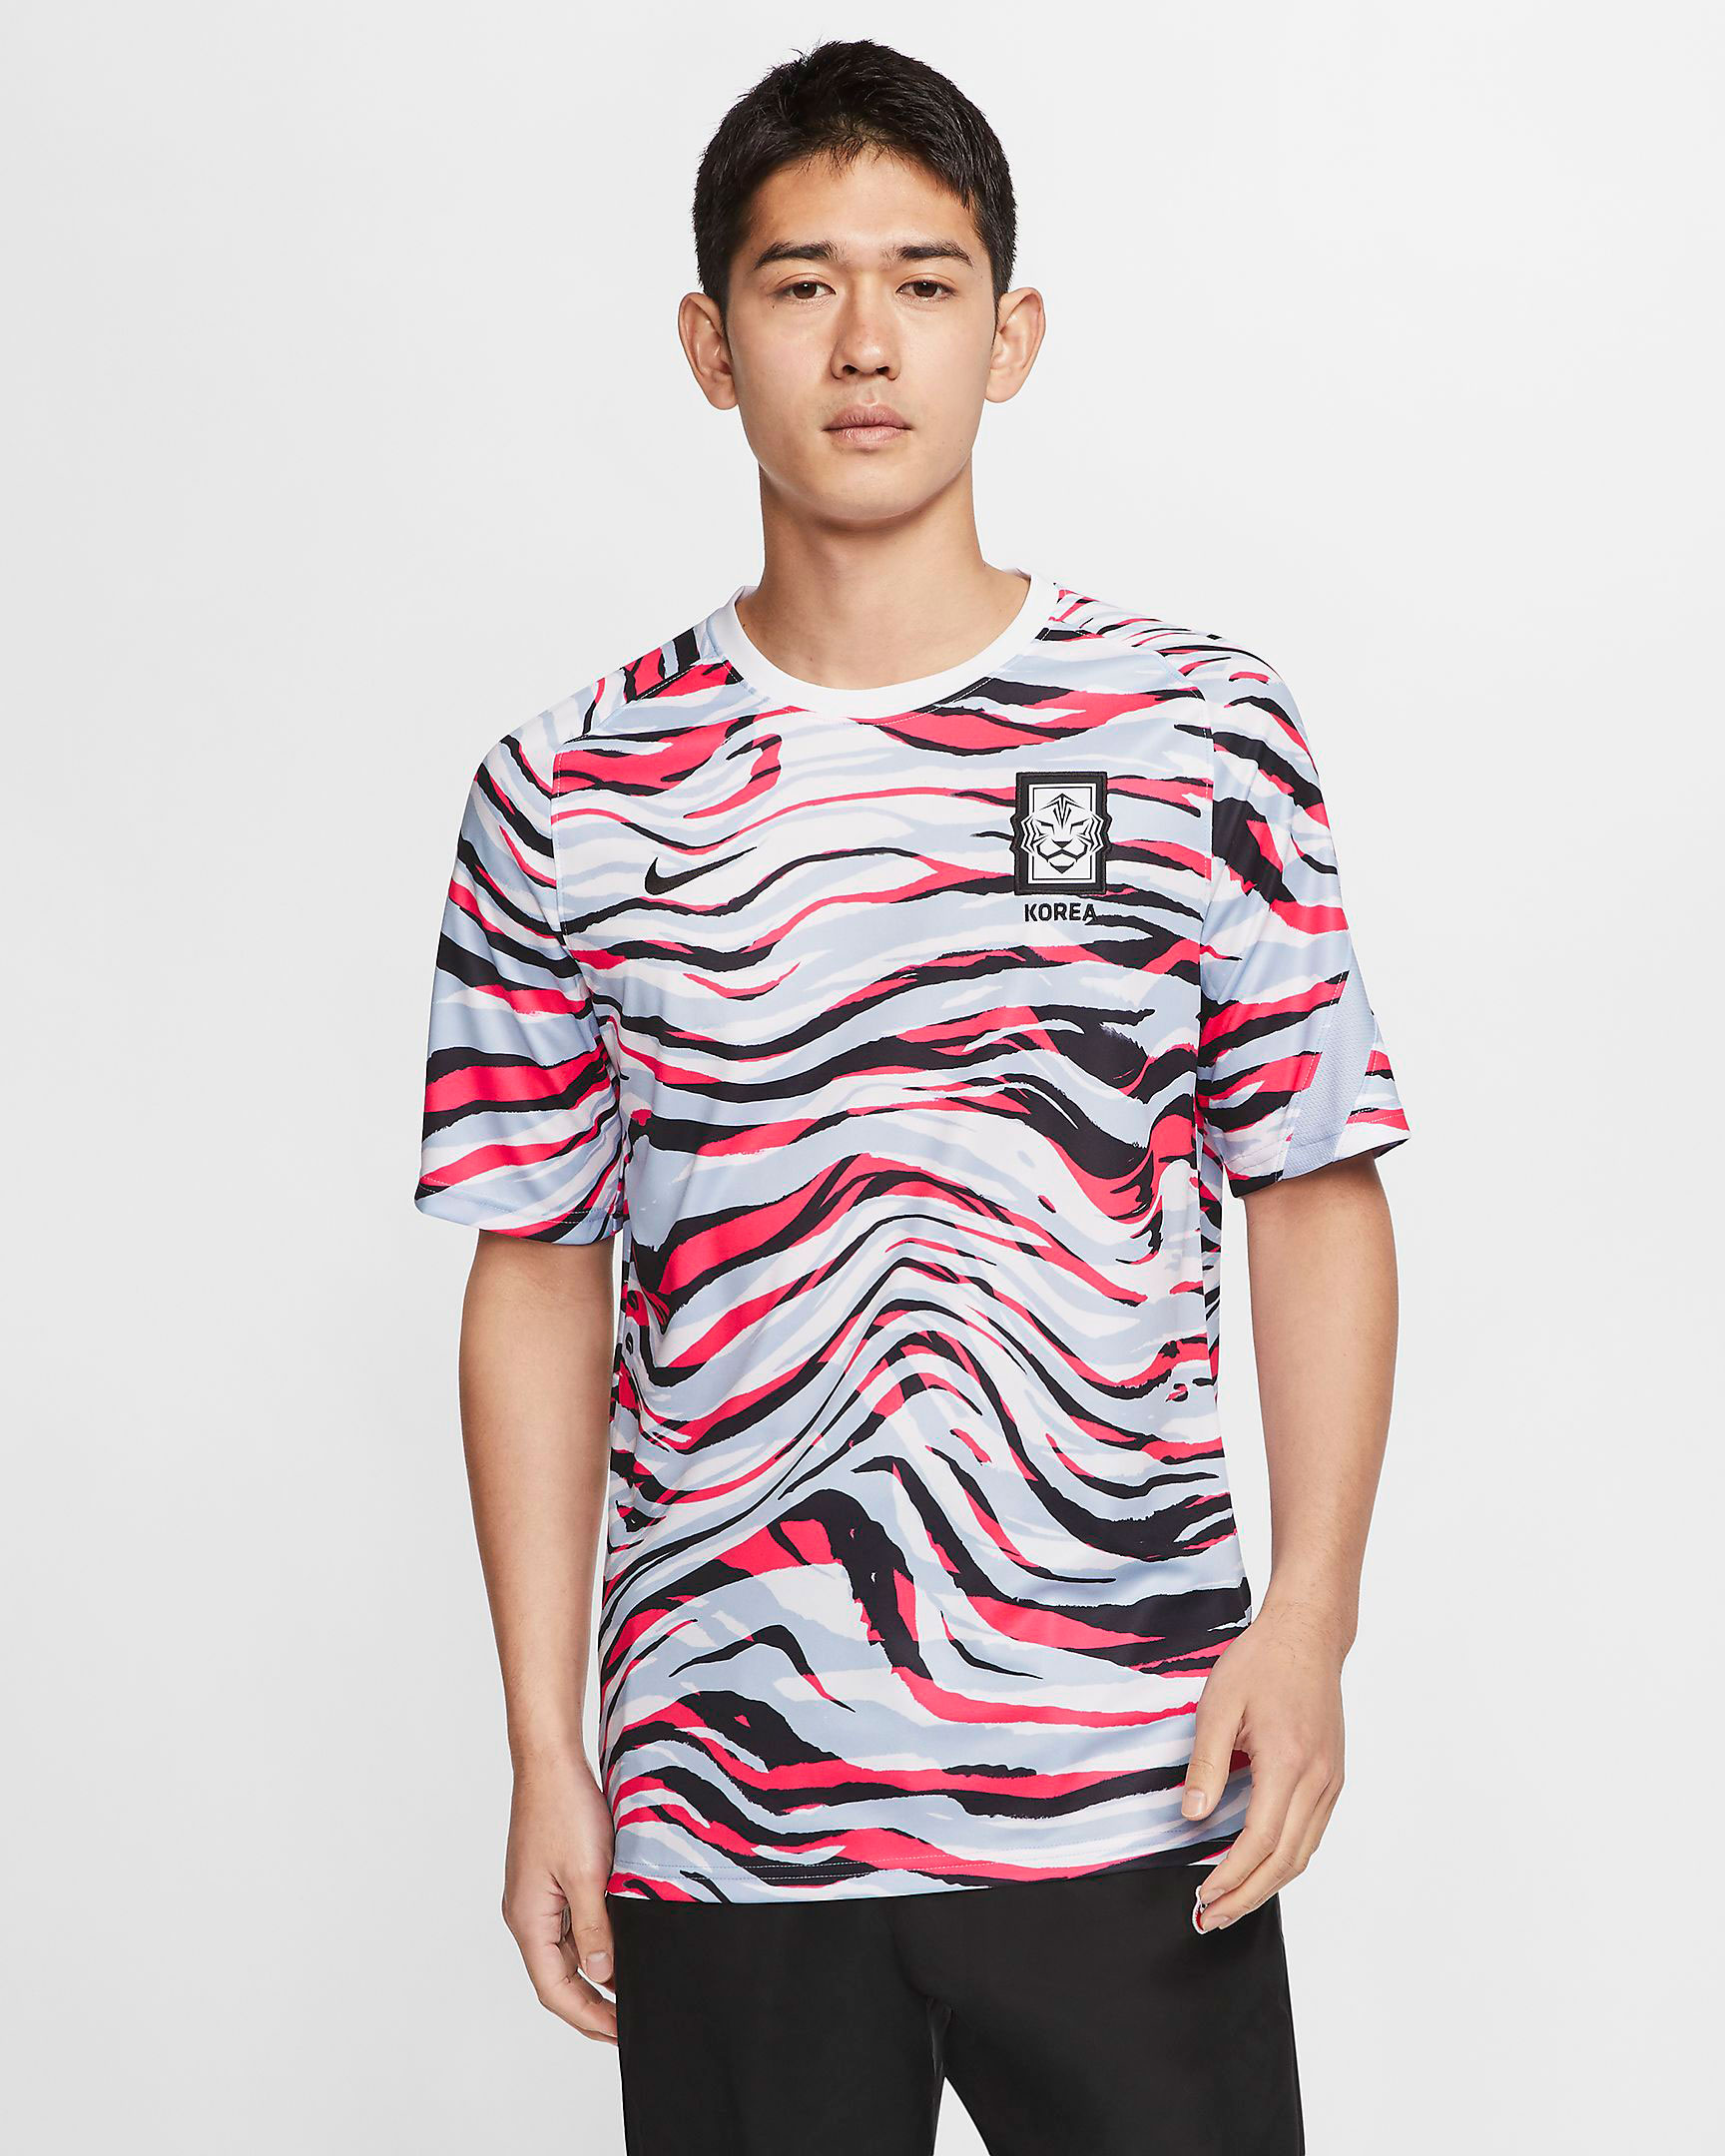 nike-korea-soccer-top-jersey-shirt-1